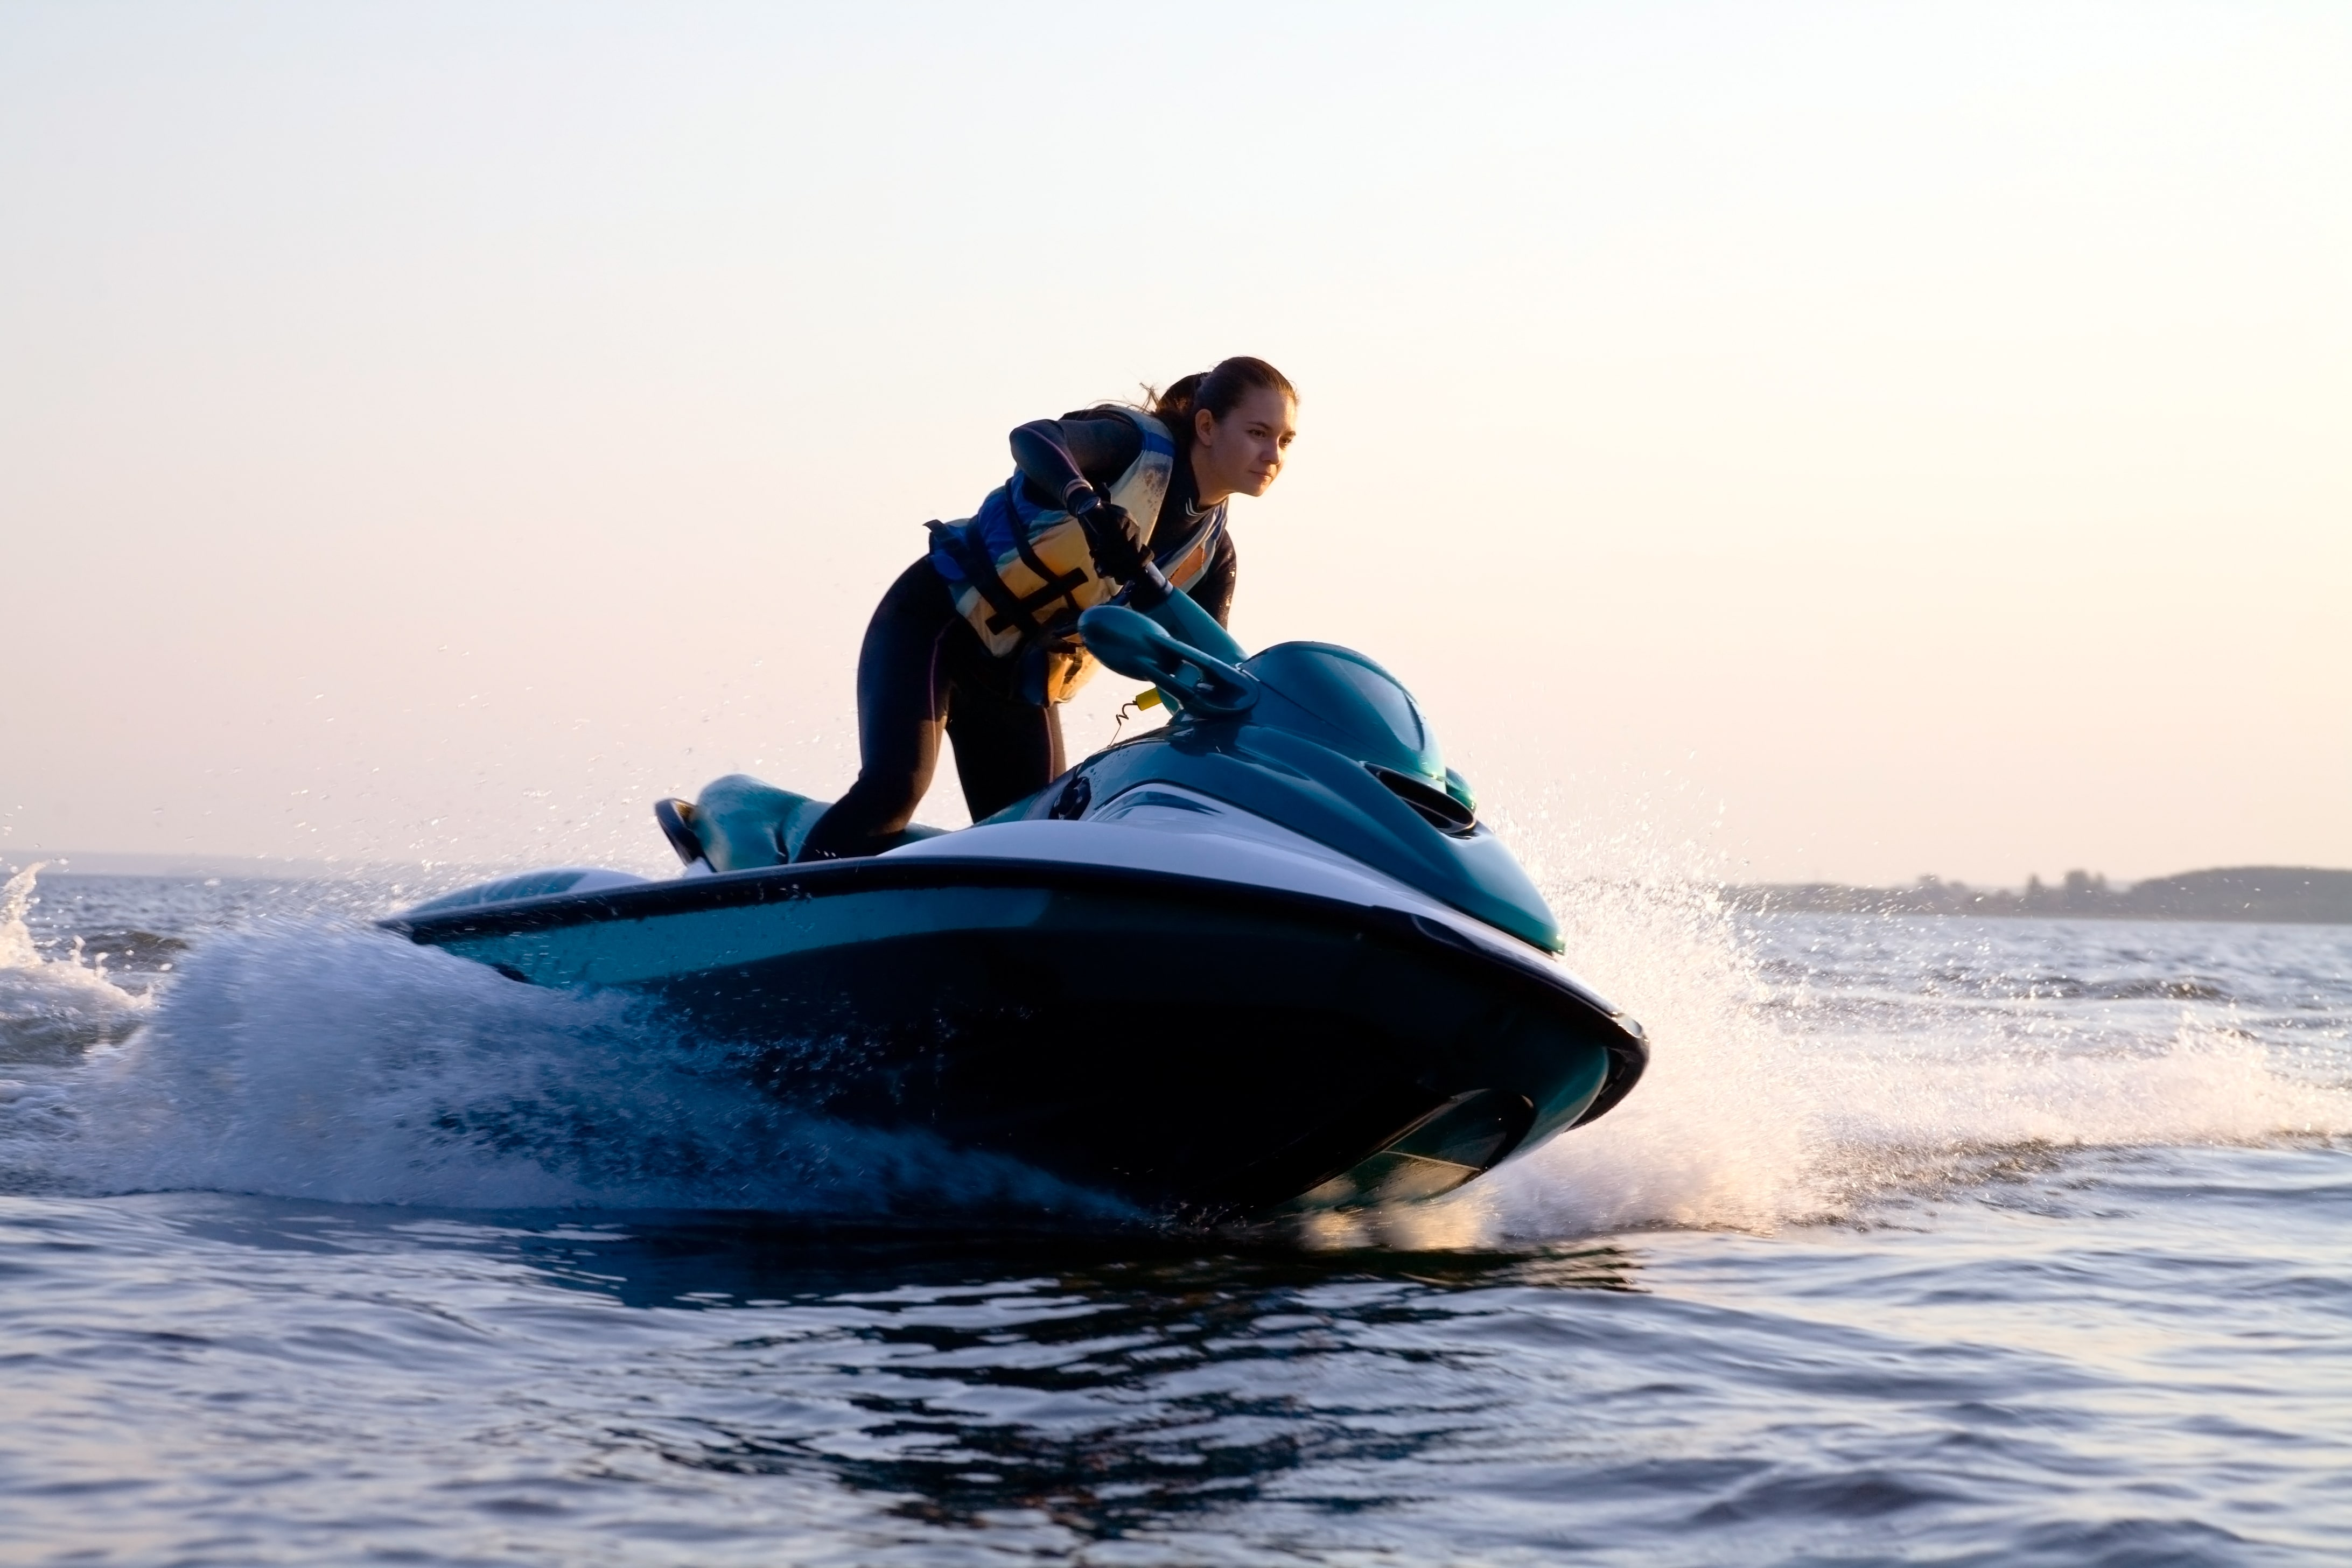 Safety first! Life vest and briefing will be given before you ride your jet ski